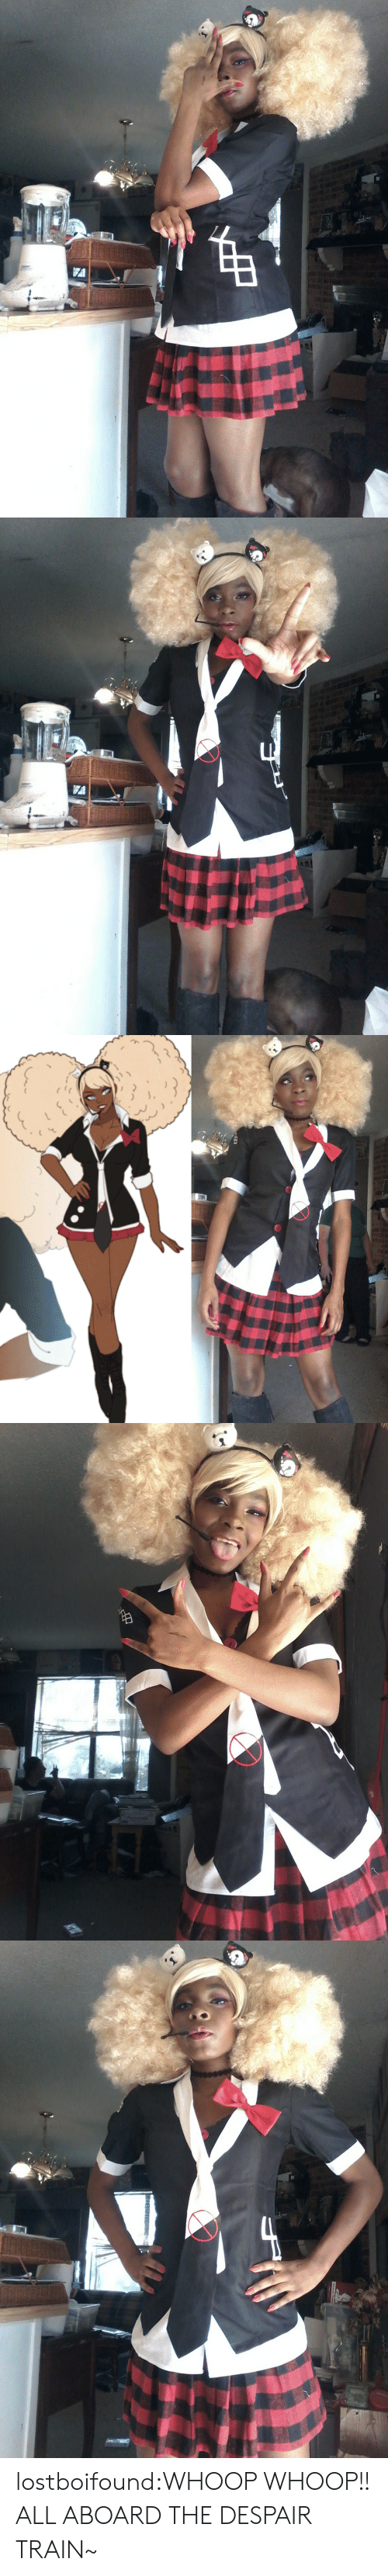 Tumblr, Blog, and Train: lostboifound:WHOOP WHOOP!! ALL ABOARD THE DESPAIR TRAIN~